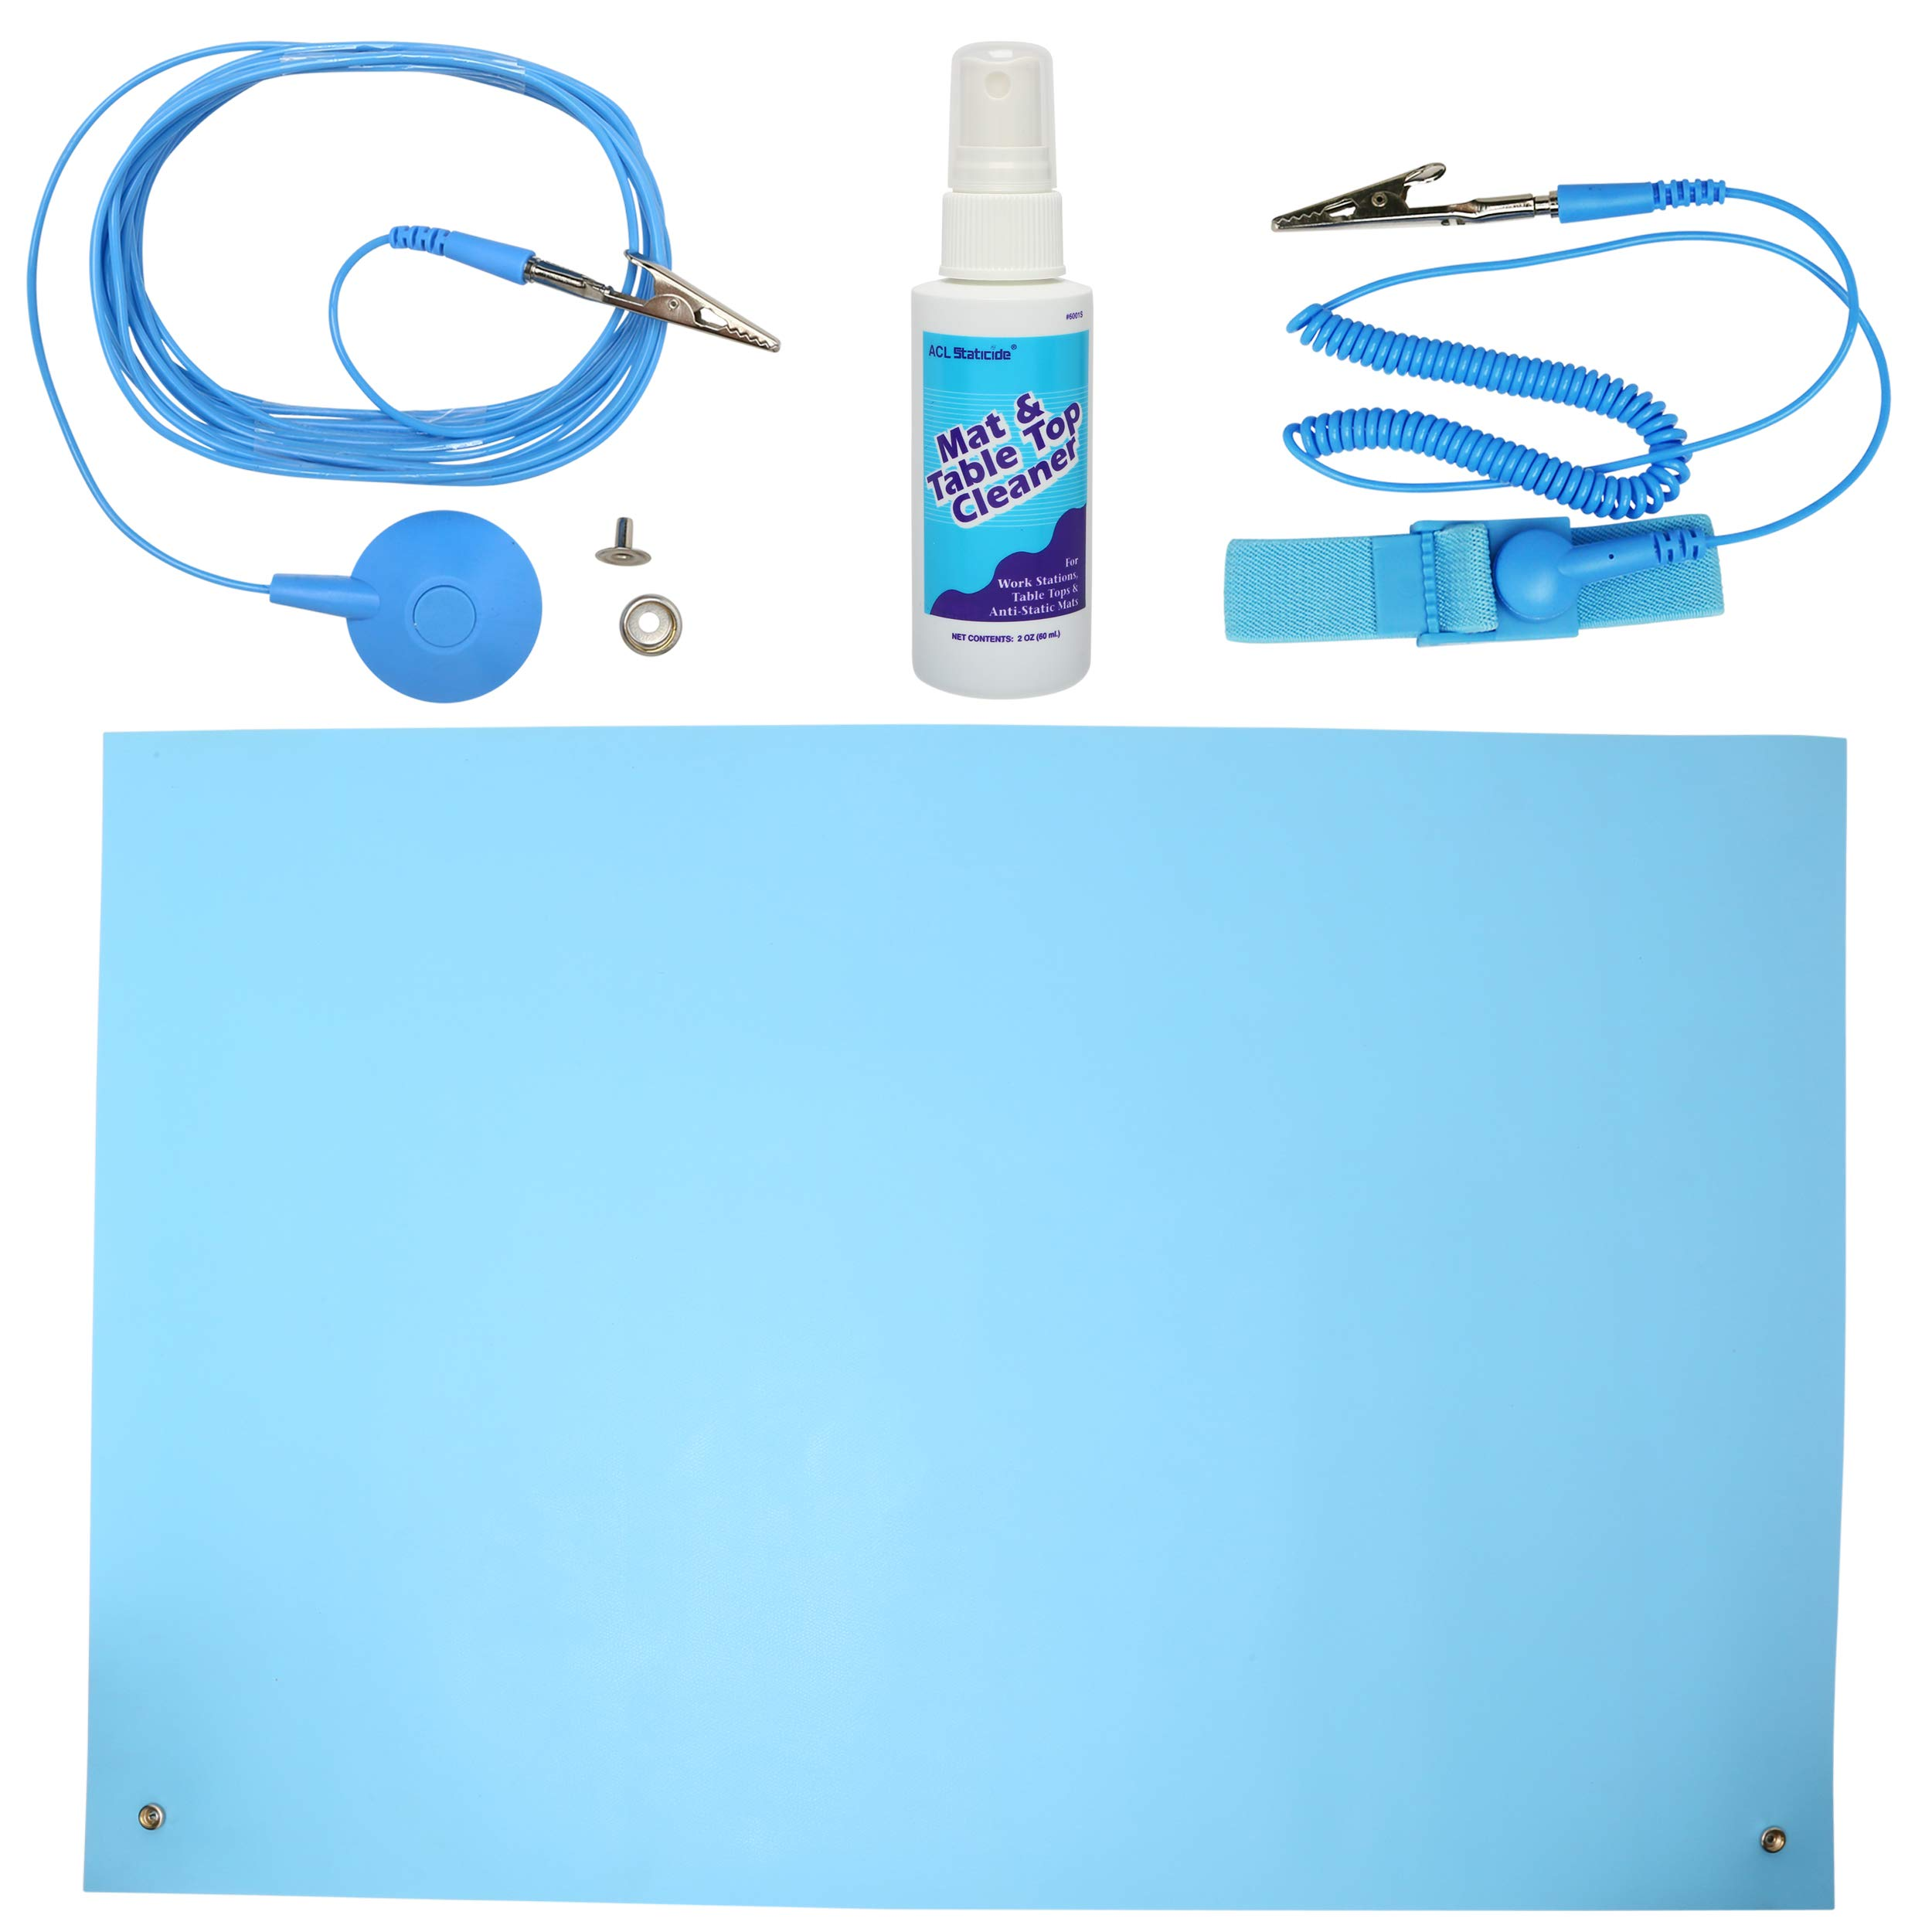 ESD High Temperature Mat Kit | 24'' x 36'' | Sky Blue | with (1) ESD Wrist Strap, (1) ESD Grounding Cord, (1) Bottle of Mat Cleaner